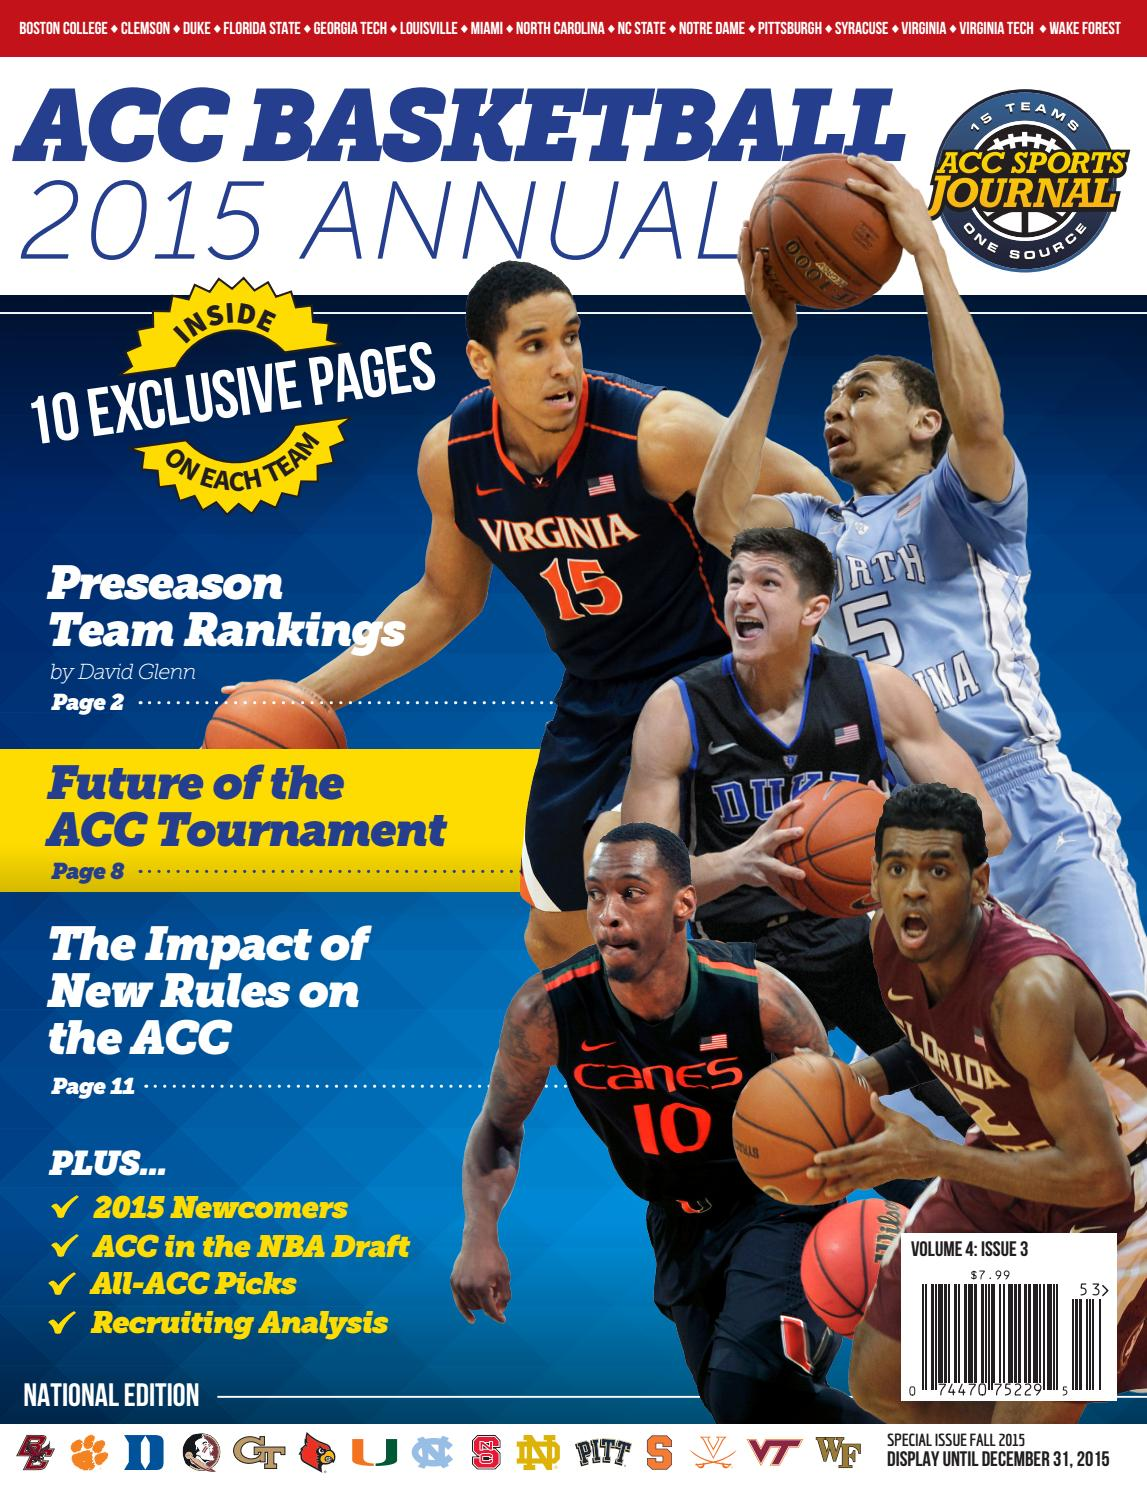 e8d5df54 ACC Basketball - 2015 Annual by Greg de Deugd - issuu